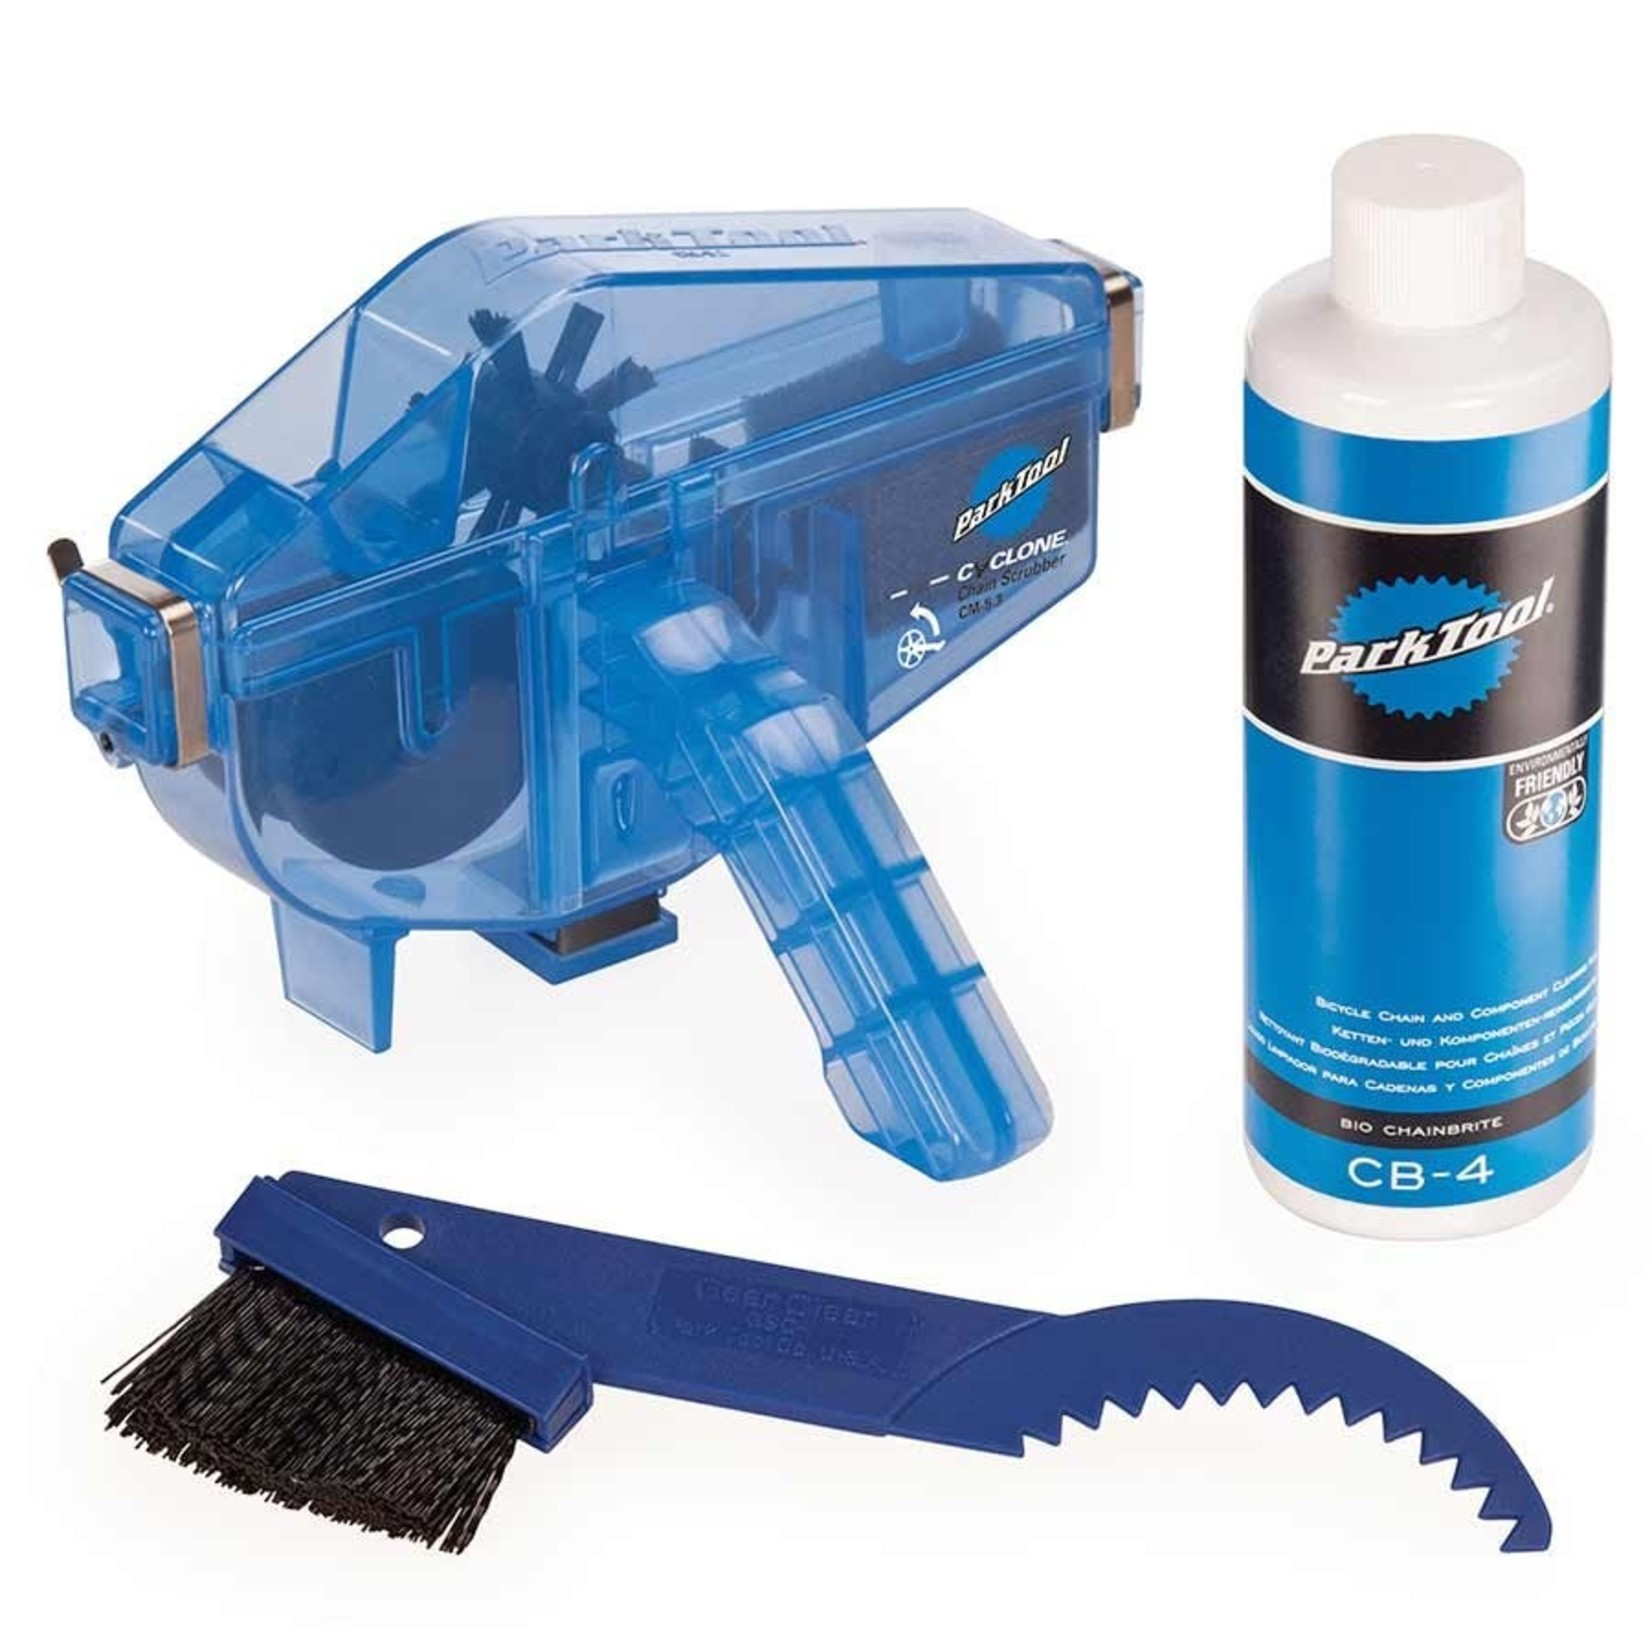 Park Tool Park Tool, CG-2.4 Chain Gang Chain Cleaning System